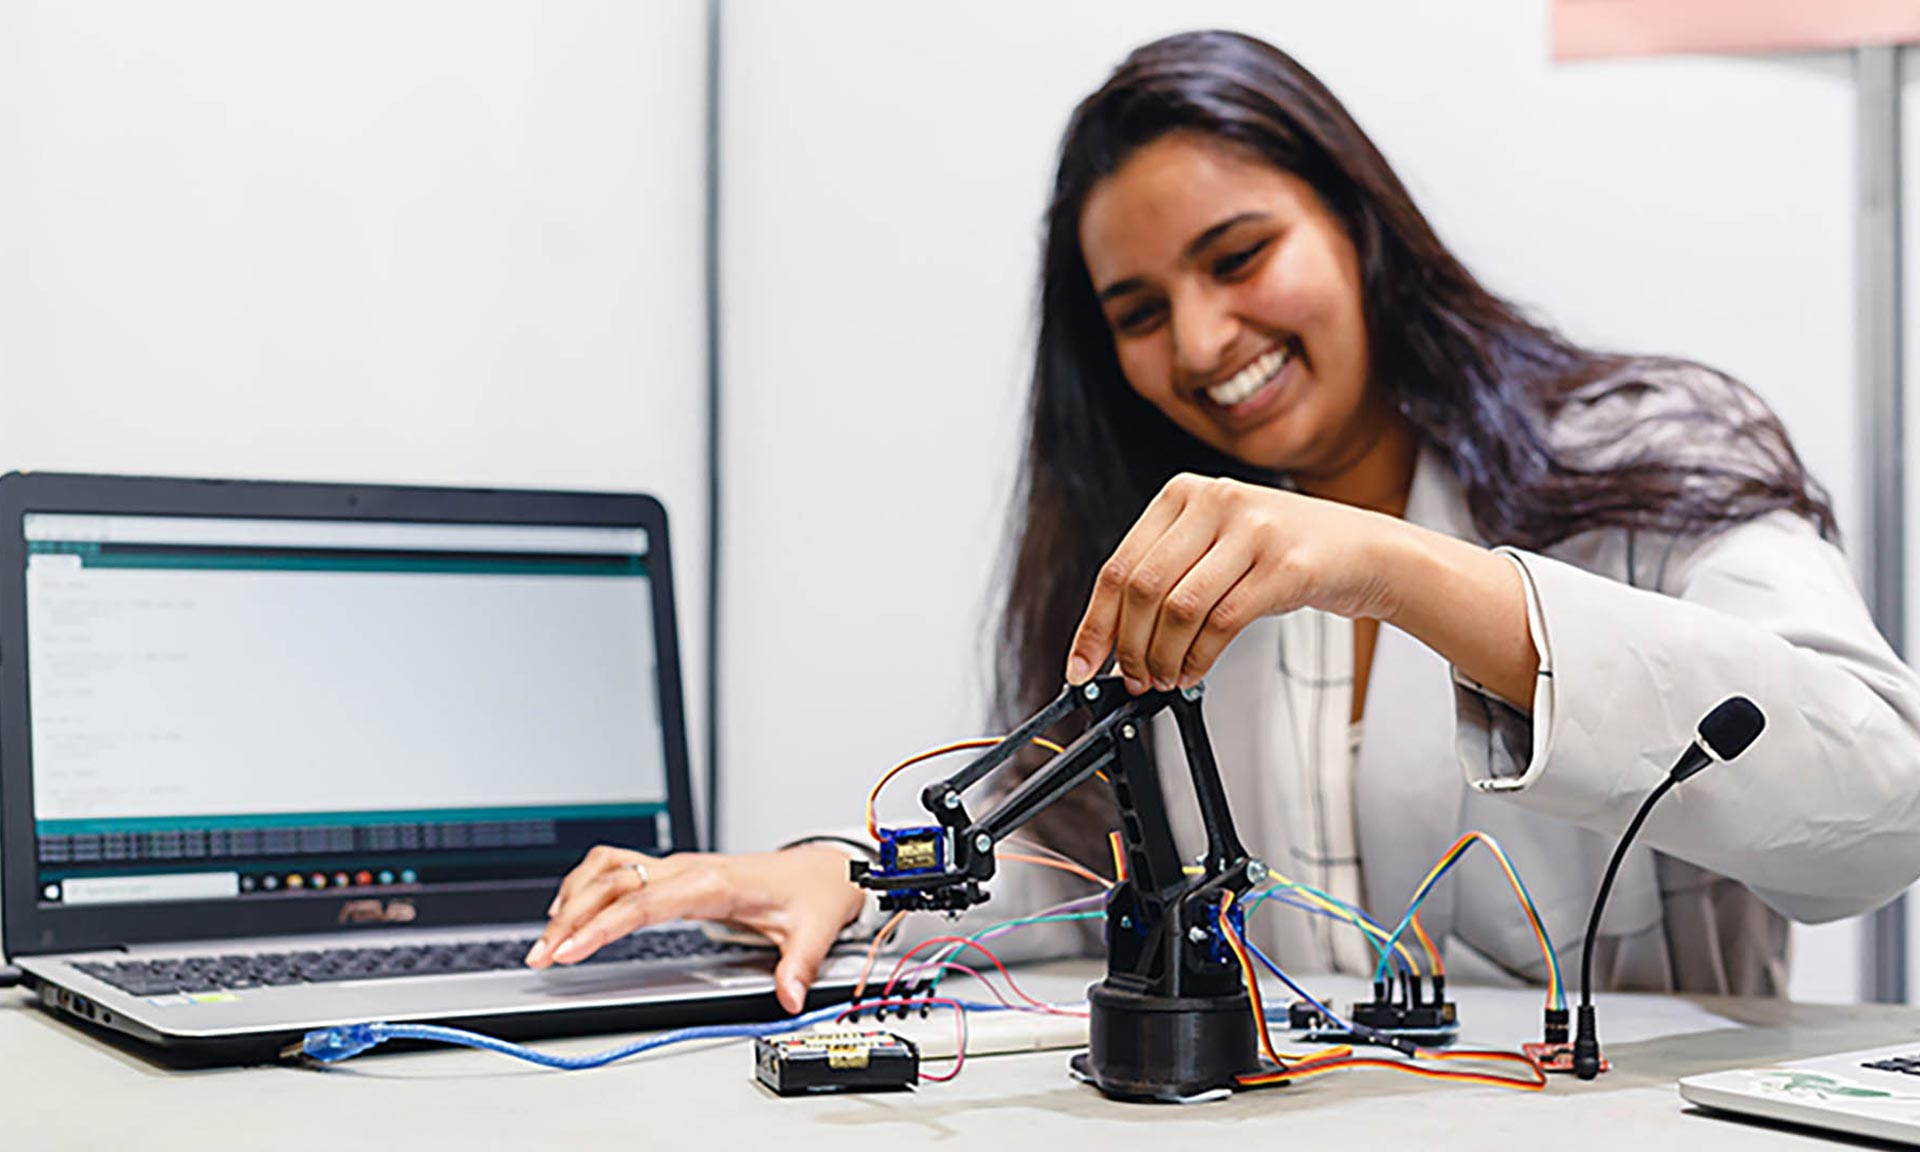 female student smiling and using robot arm kit with laptop open